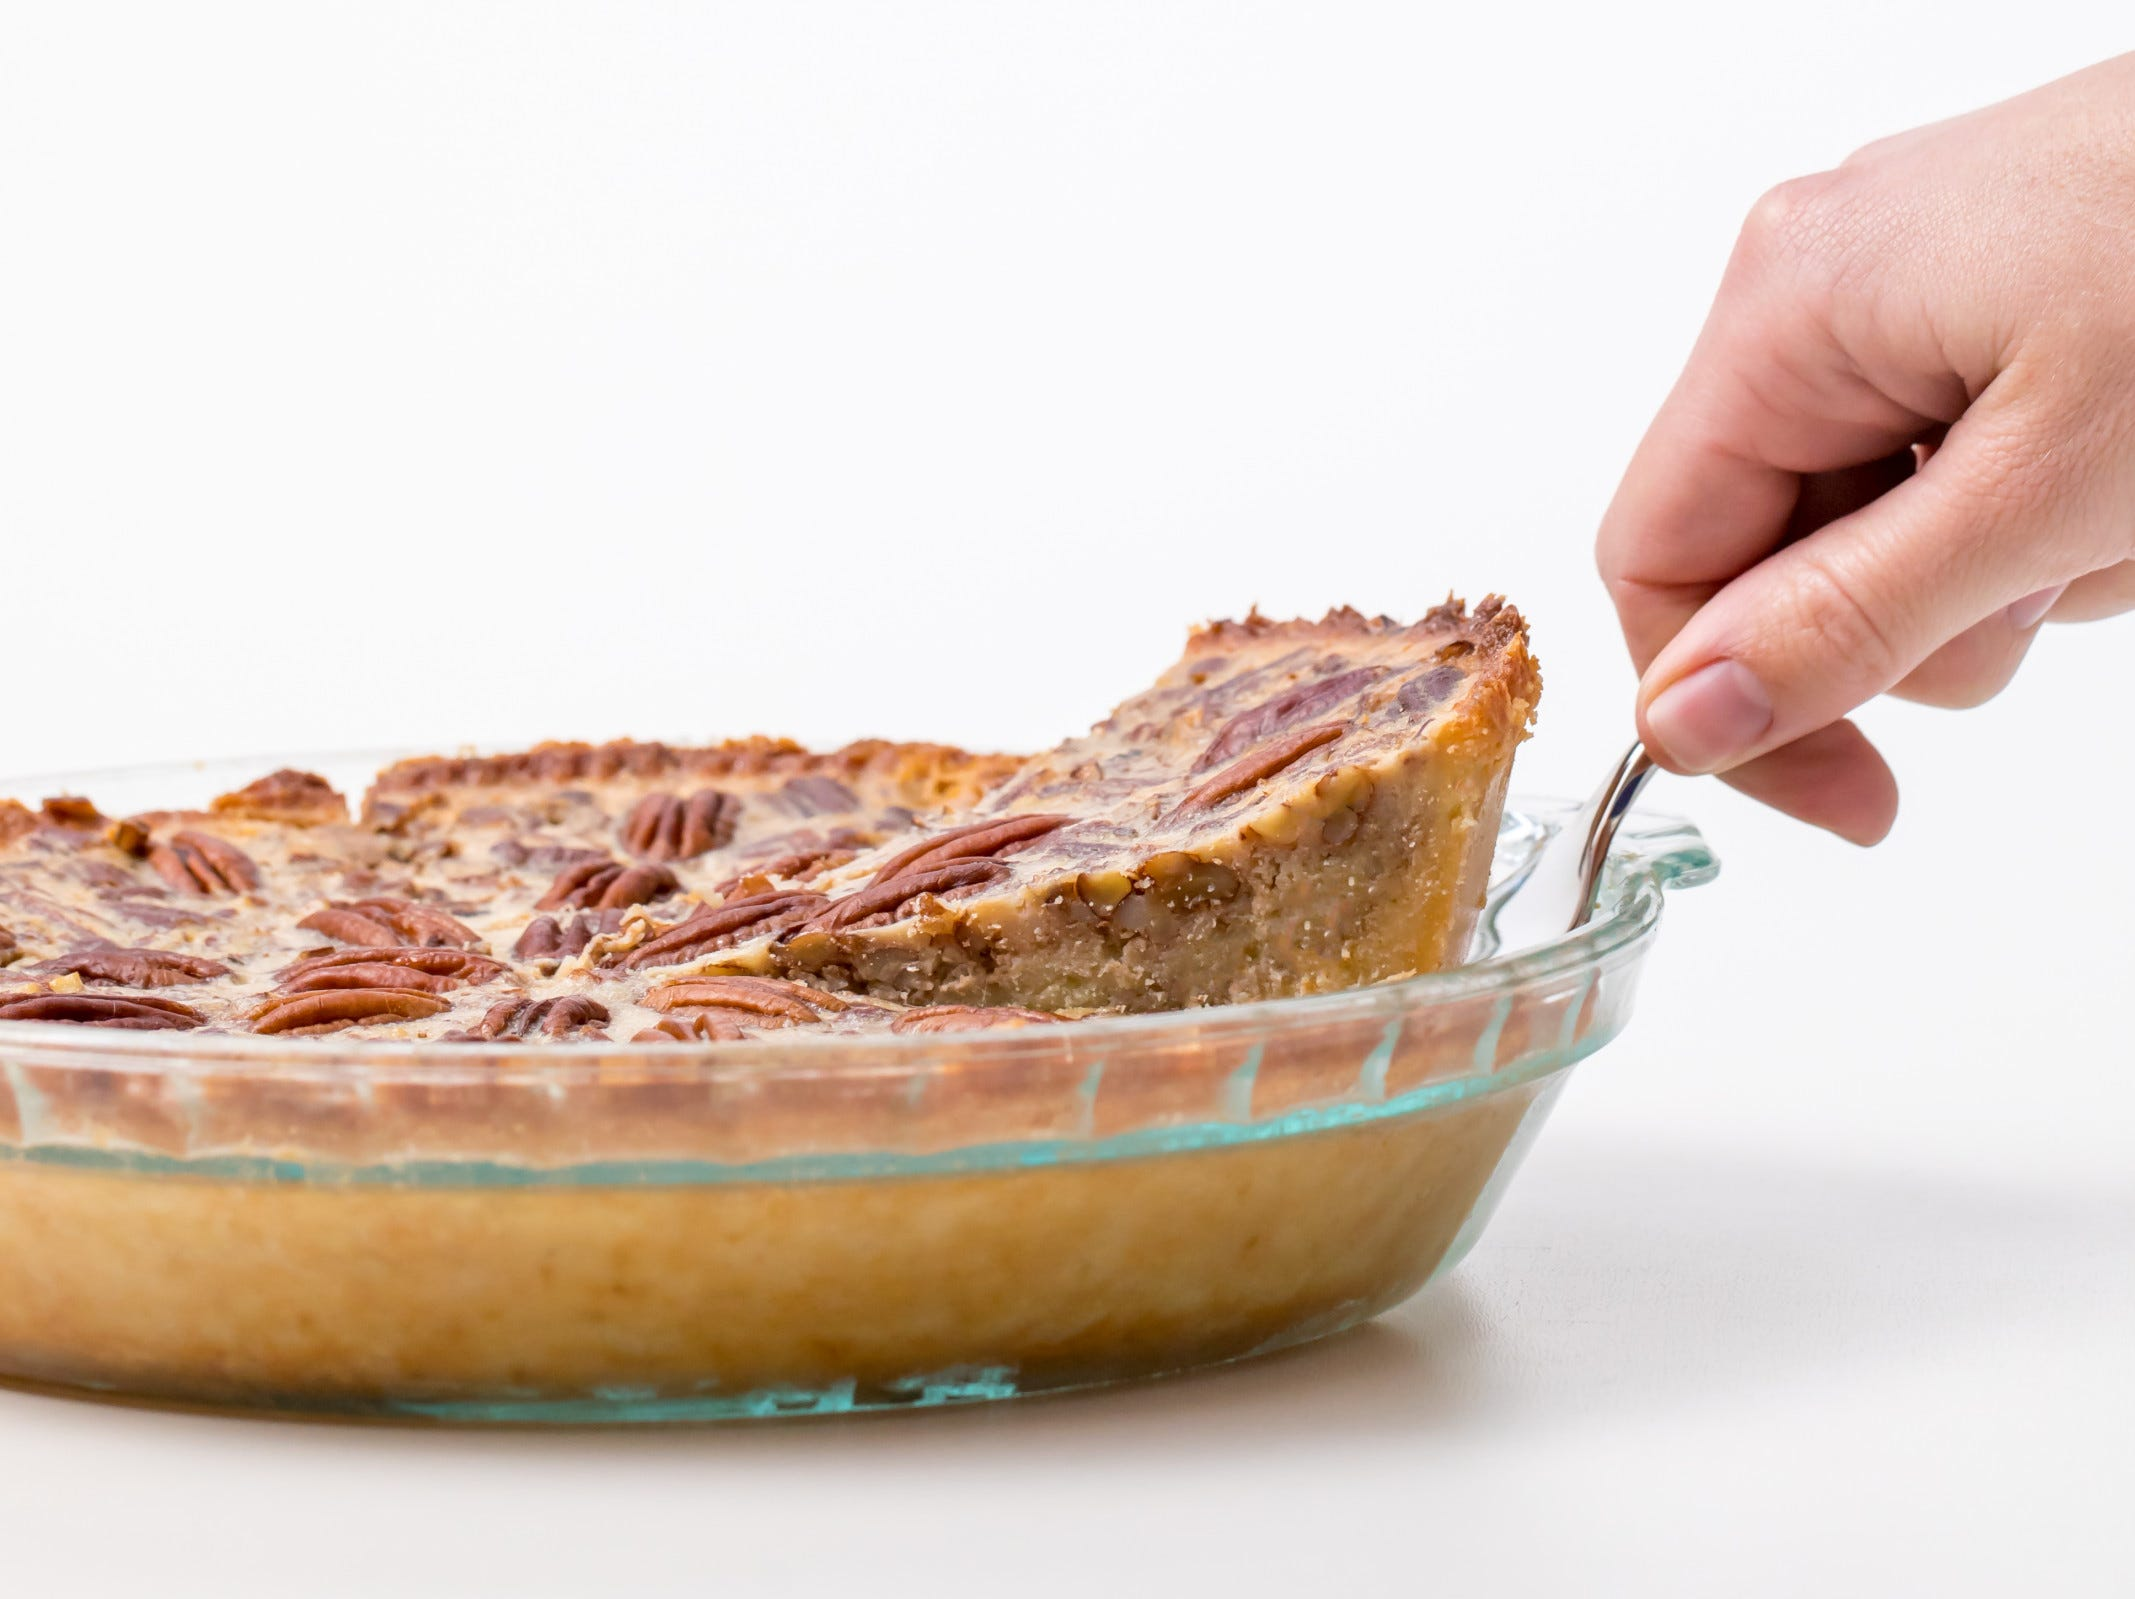 This keto pecan pie recipe, inspired by Grass Fed Girl, gives us a rich, toasty homemade dessert. It's so good, you'll think you're having a cheat day.